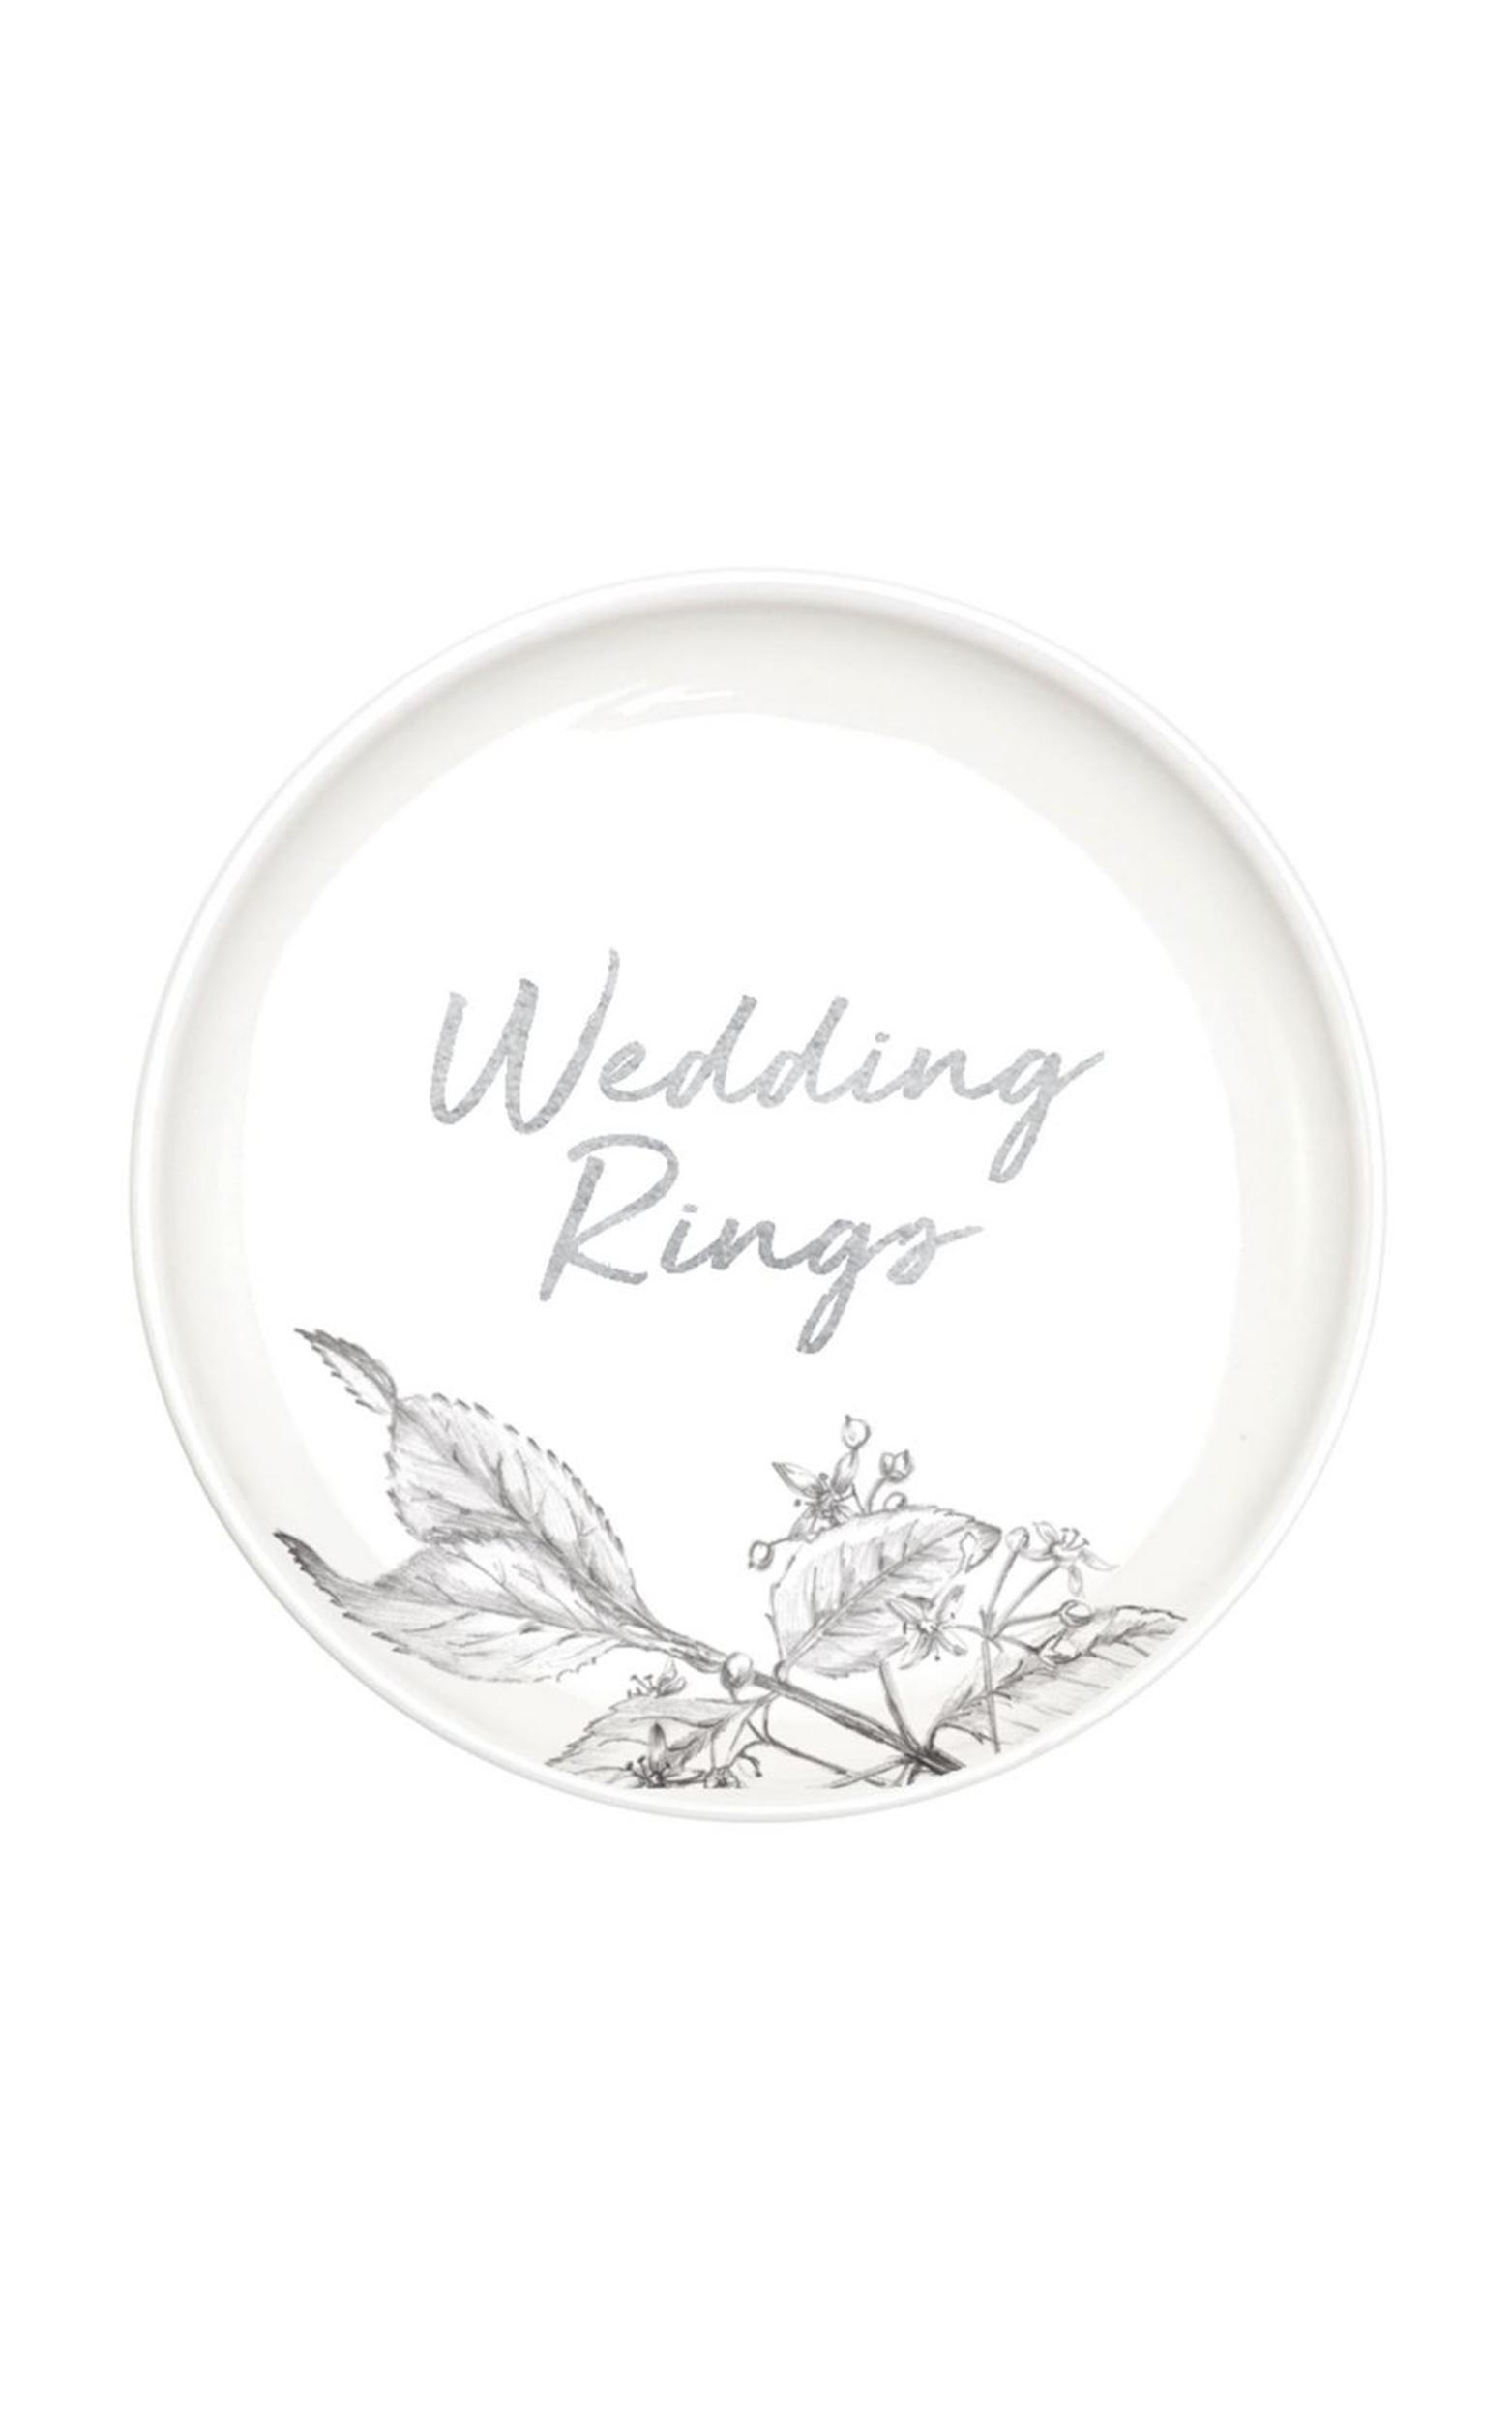 Wedding Rings Trinket Tray In White, , hi-res image number null